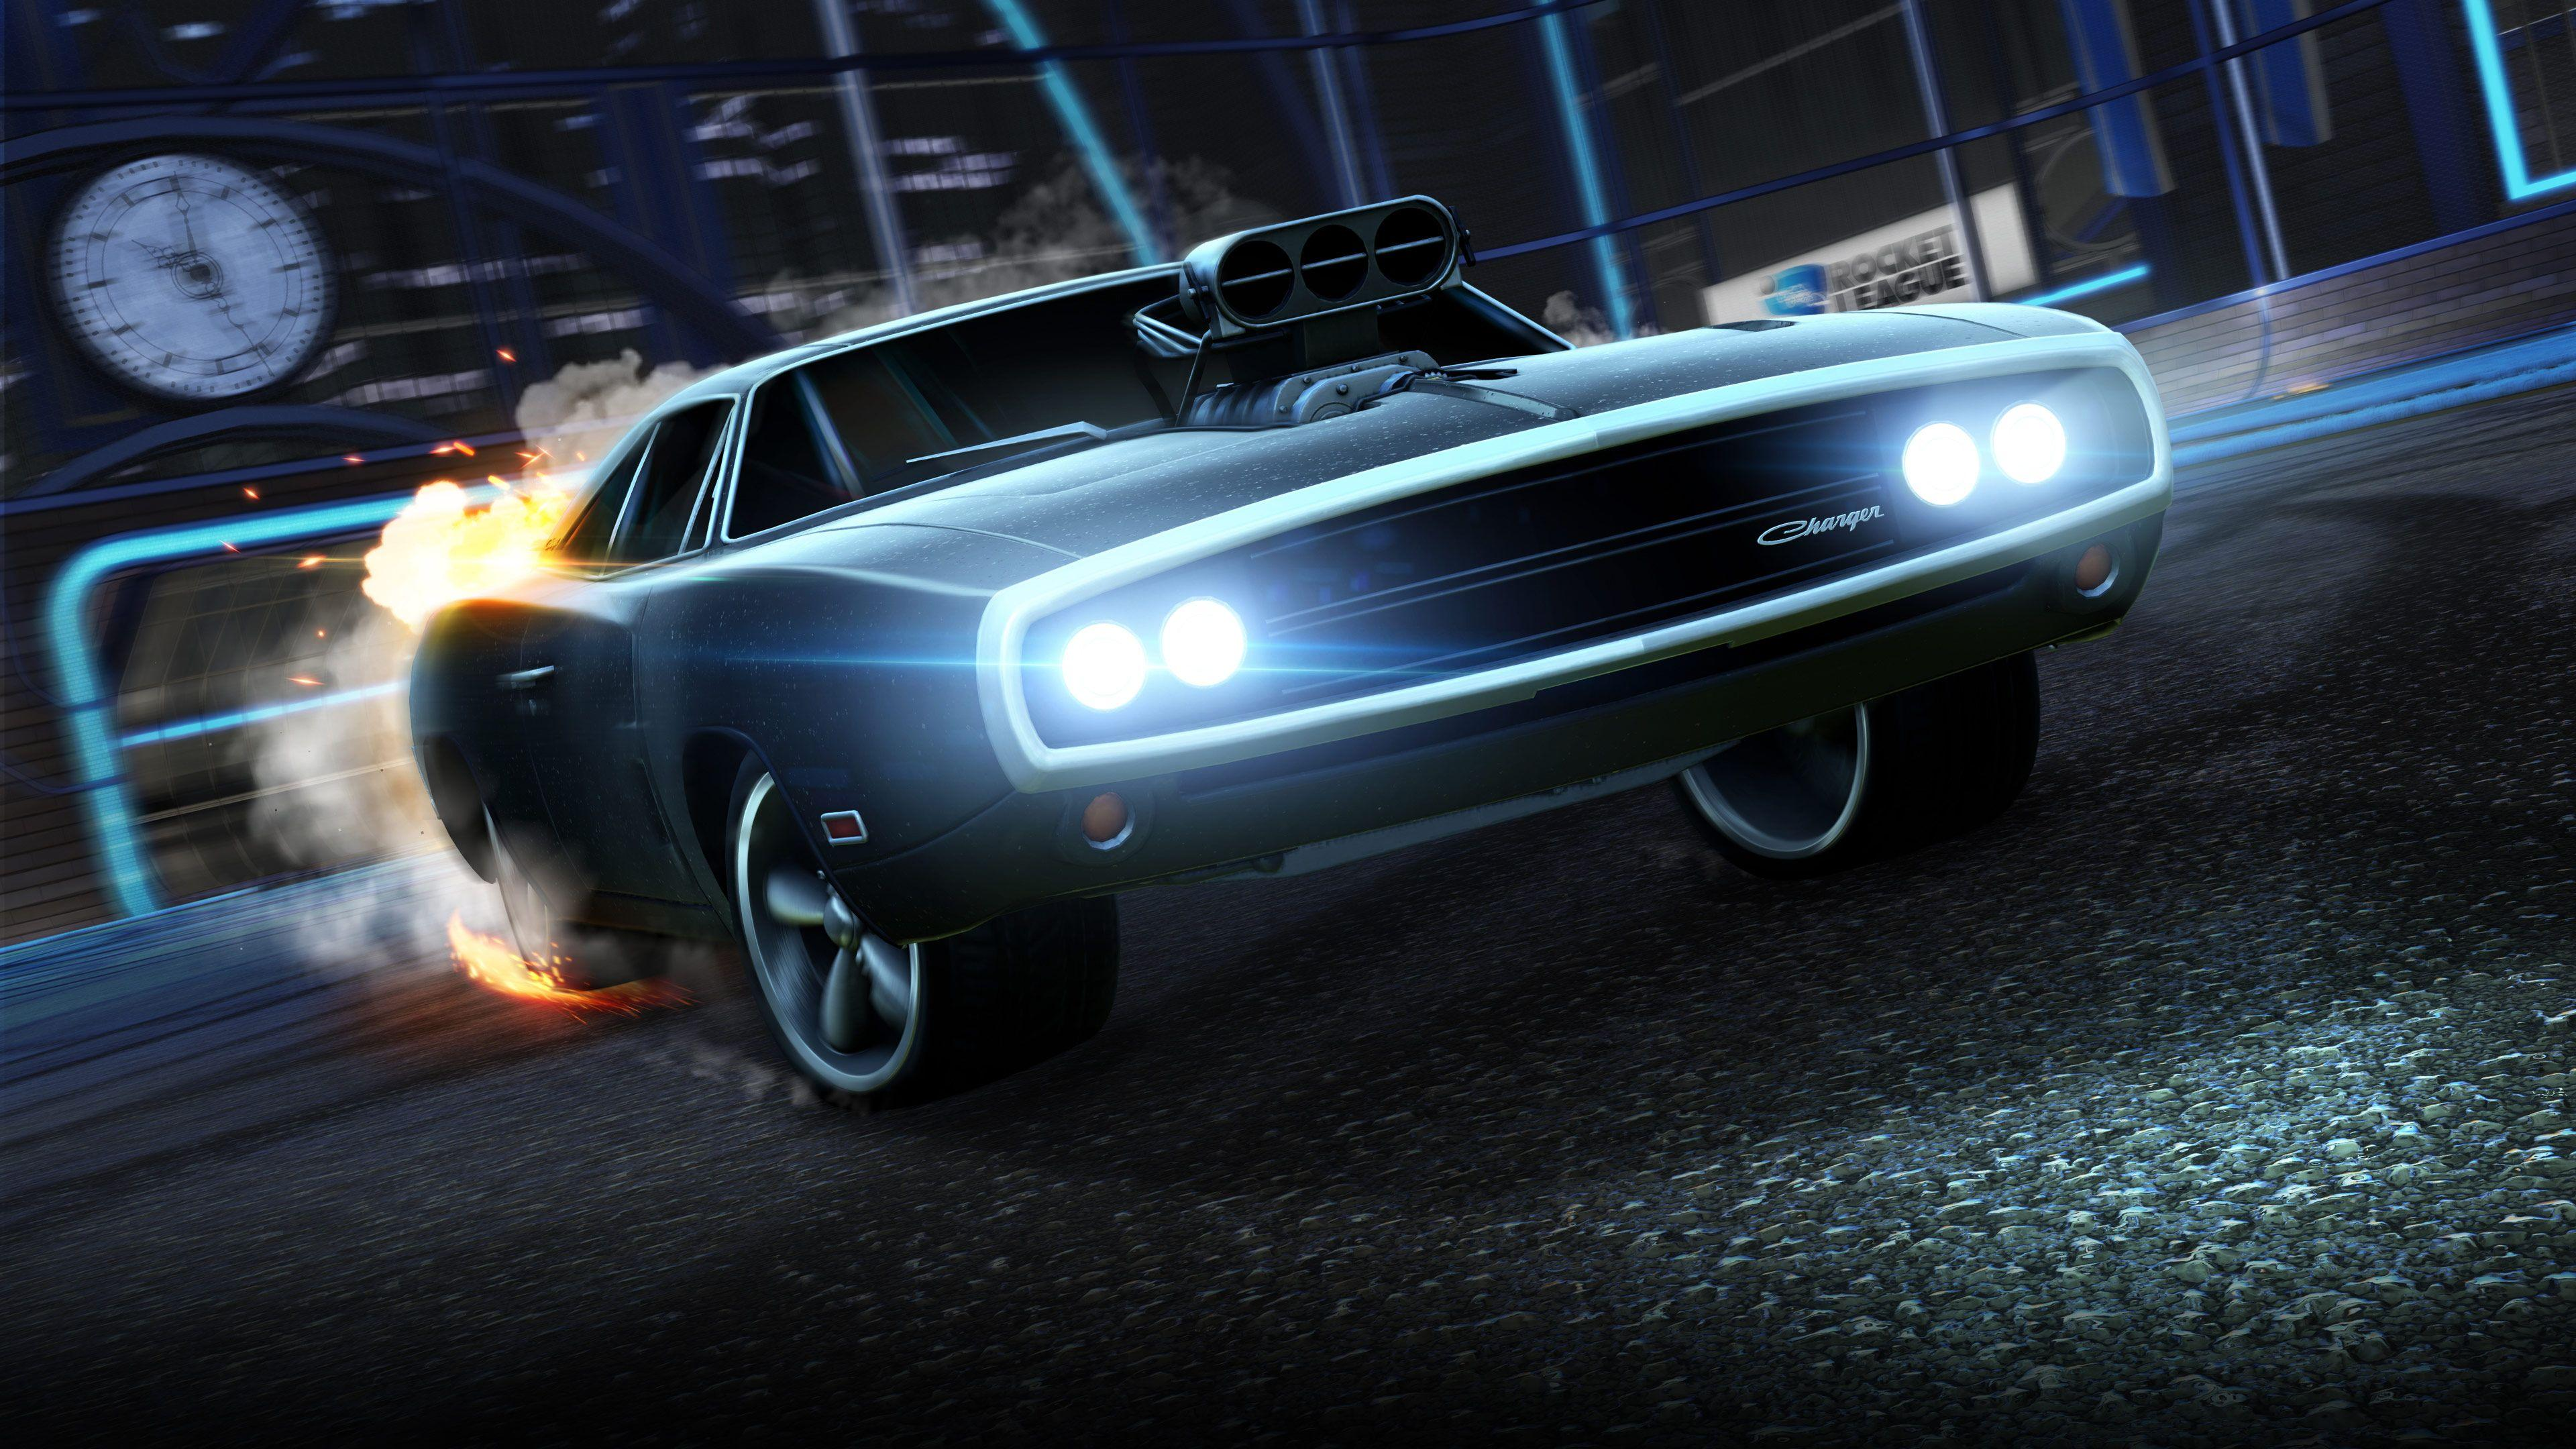 Wallpapers Dodge Charger, Fast & Furious, Rocket League, 4K, Games